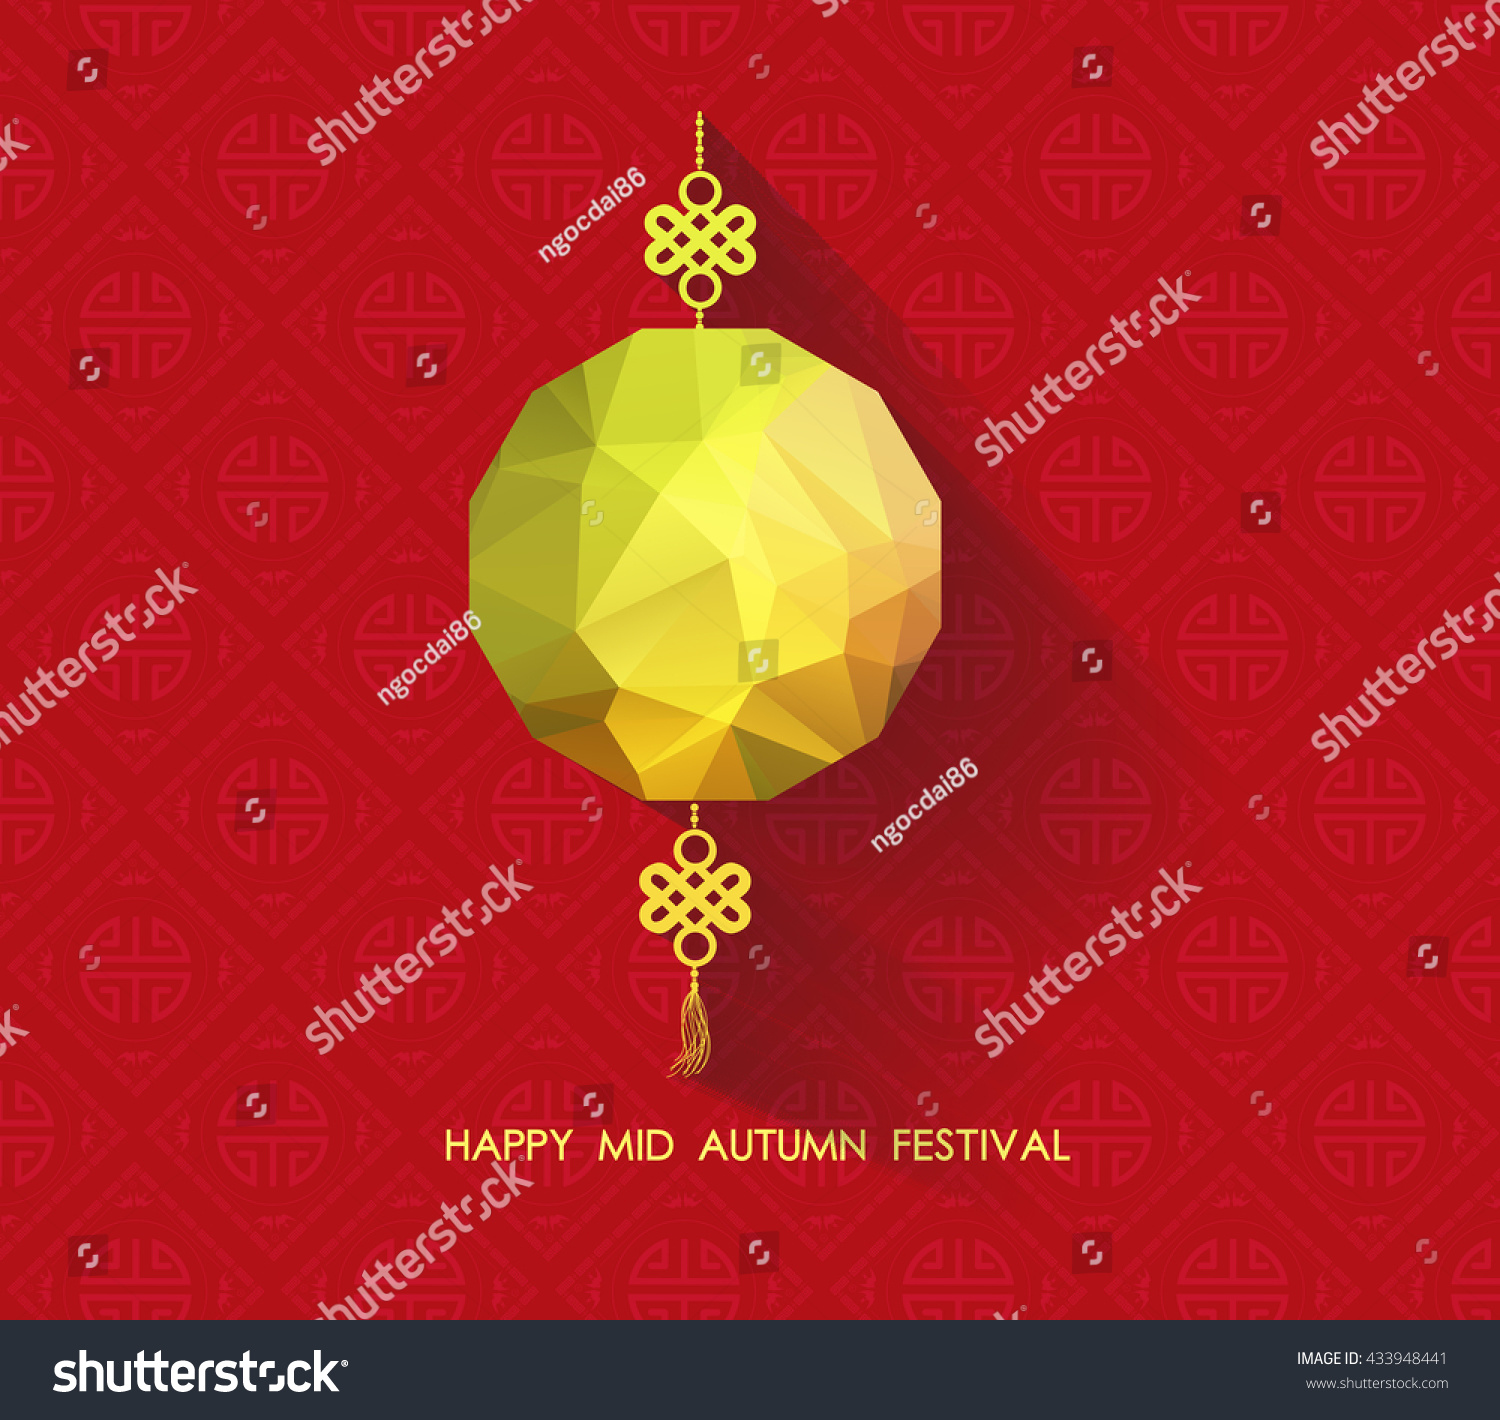 mid autumn festival lantern essay Free essay: moon cake festival: a mid-autumn festival (chung chiu), the third major festival of the chinese calendar, is celebrated on the 15th day of the home page free essays it is held in conjunction with the annual lantern festival.